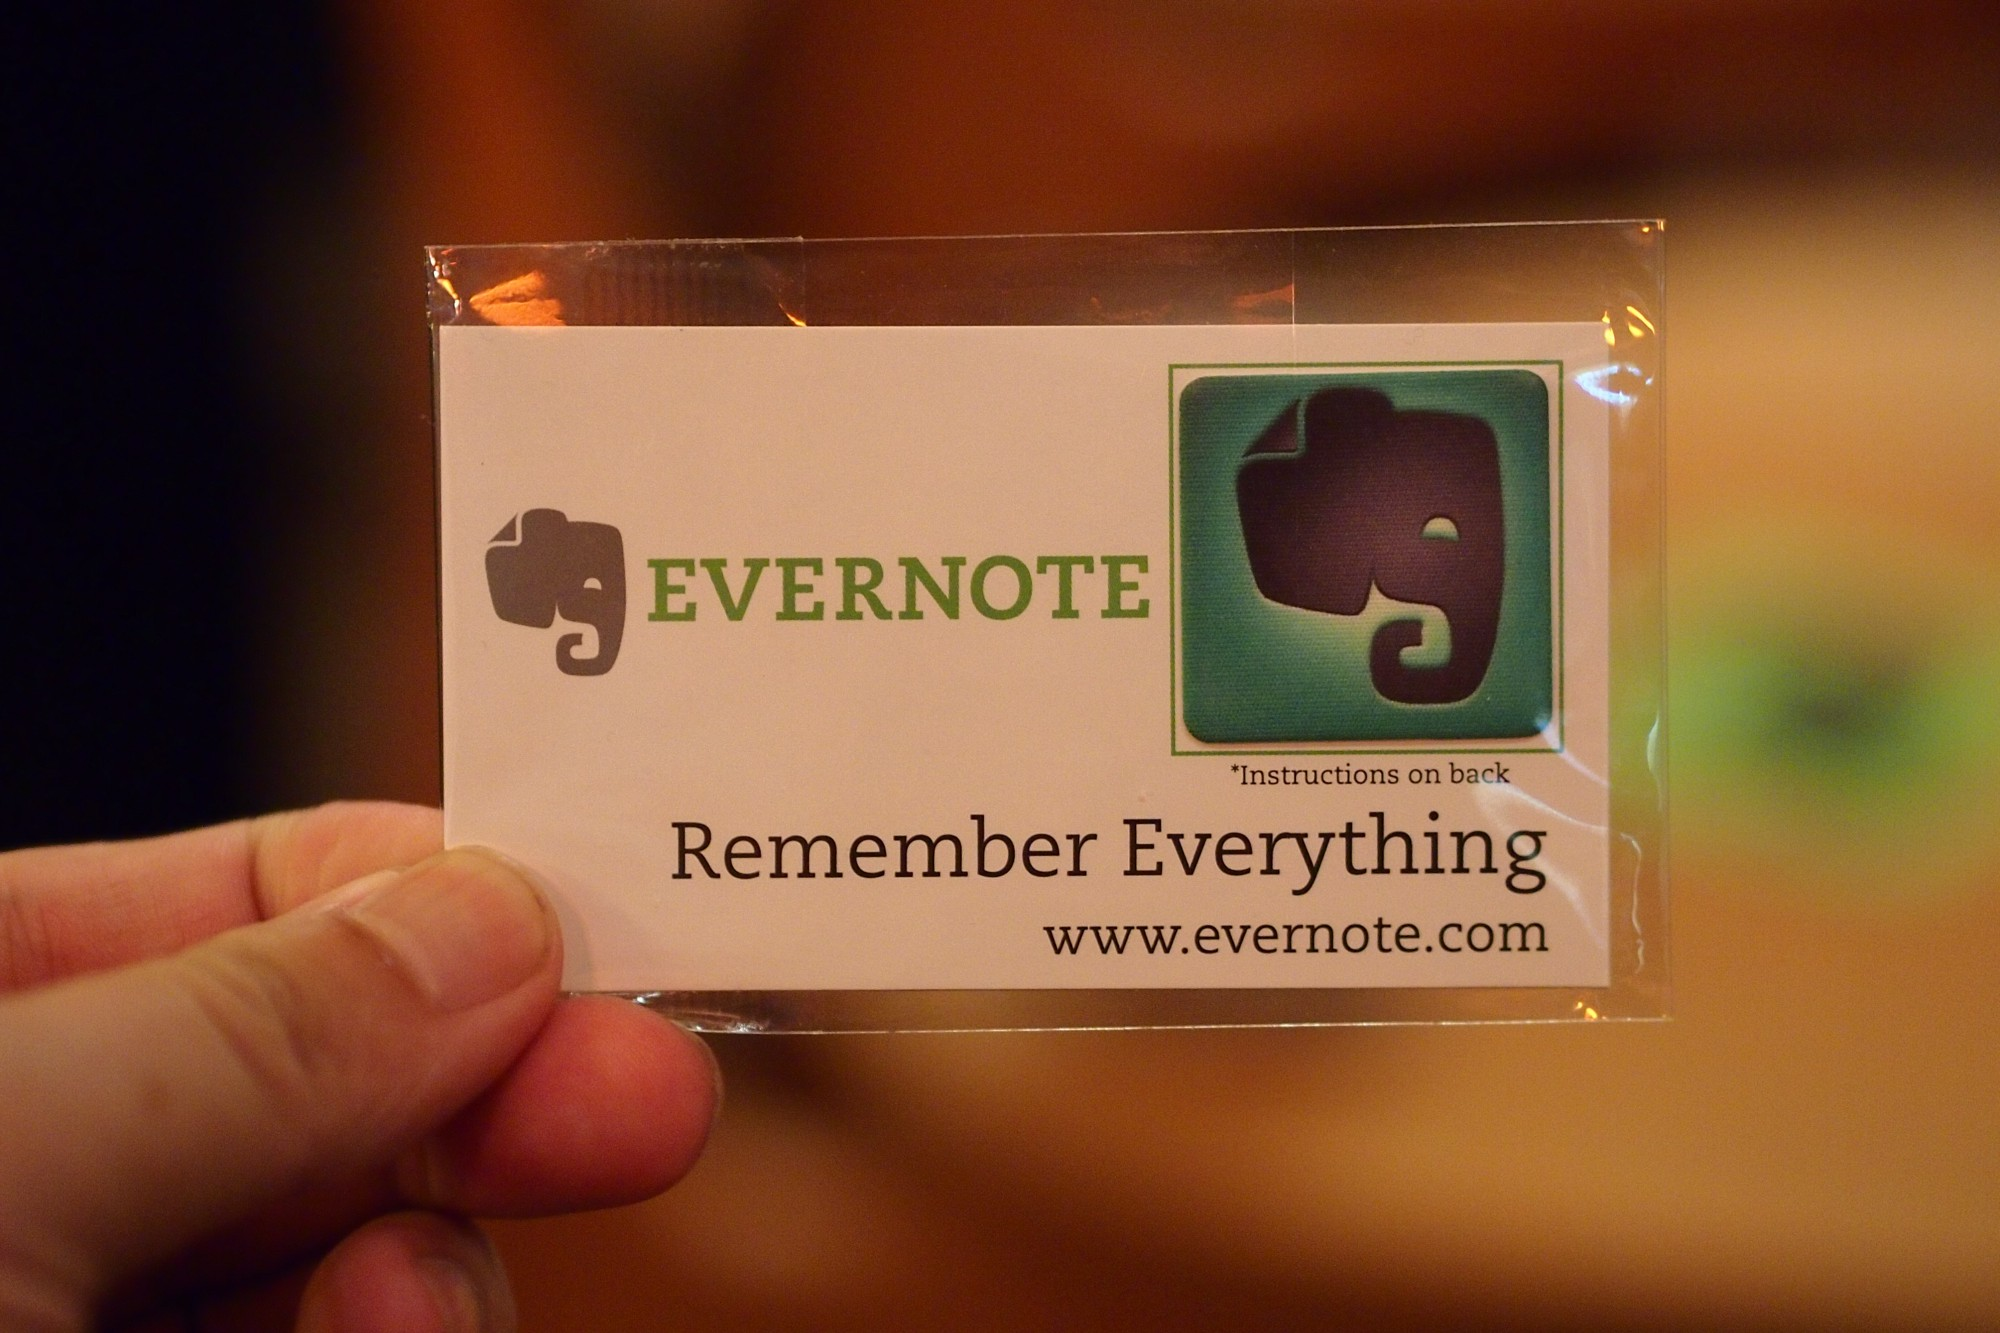 Evernote hello the best business card scanner and follow up evernote hello the best business card scanner and follow up networking application colourmoves